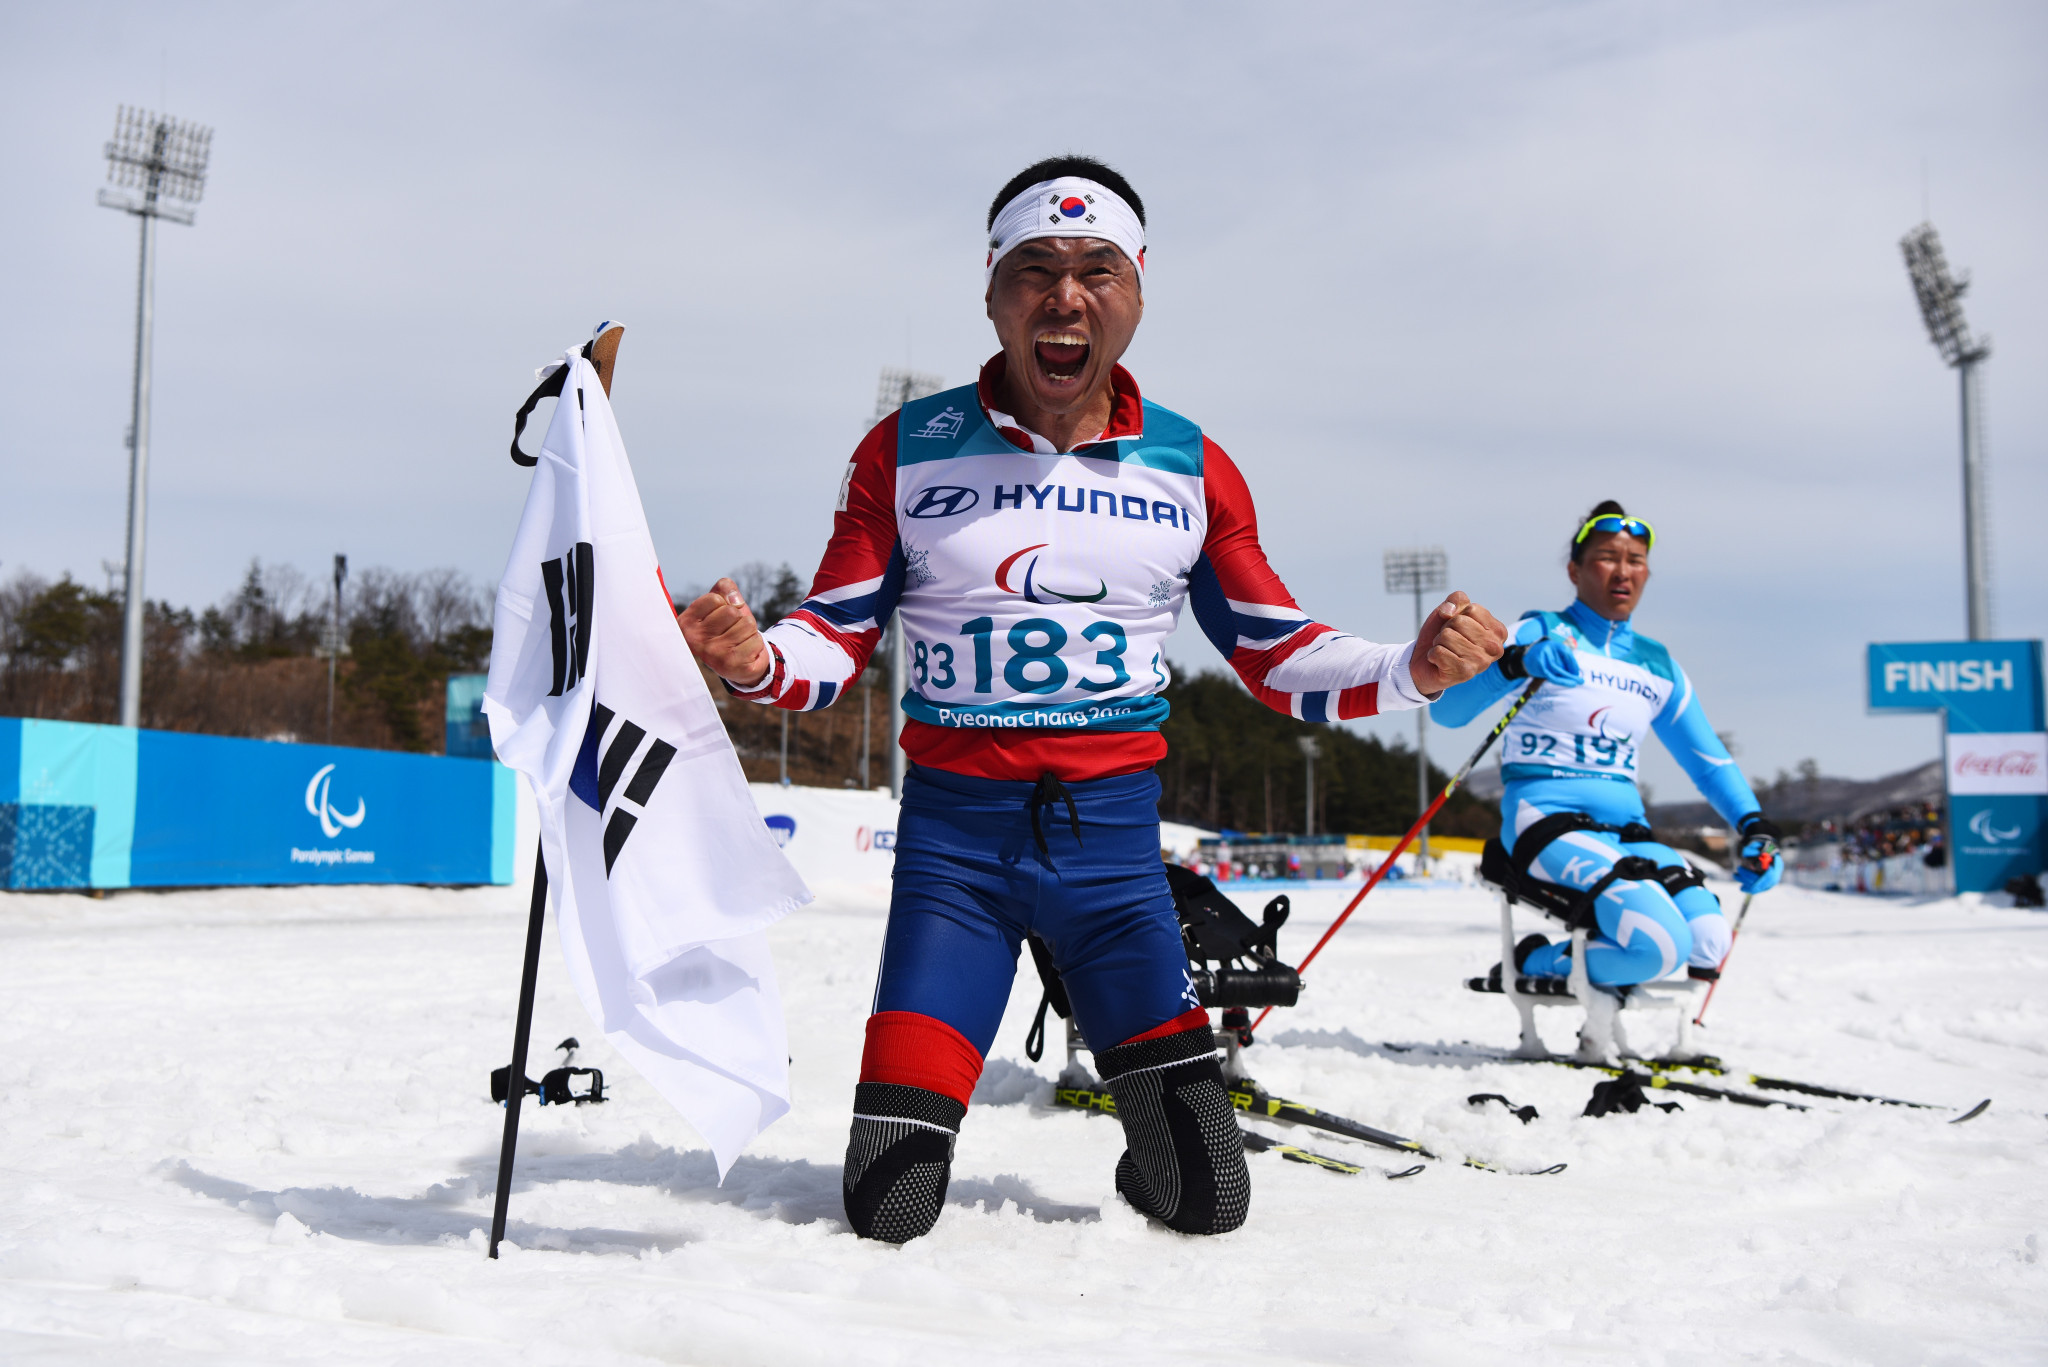 Cross-country skier Sin Eui-hyun became South Korea's first Winter Paralympic Games gold medallist at Pyeongchang 2018 ©Getty Images